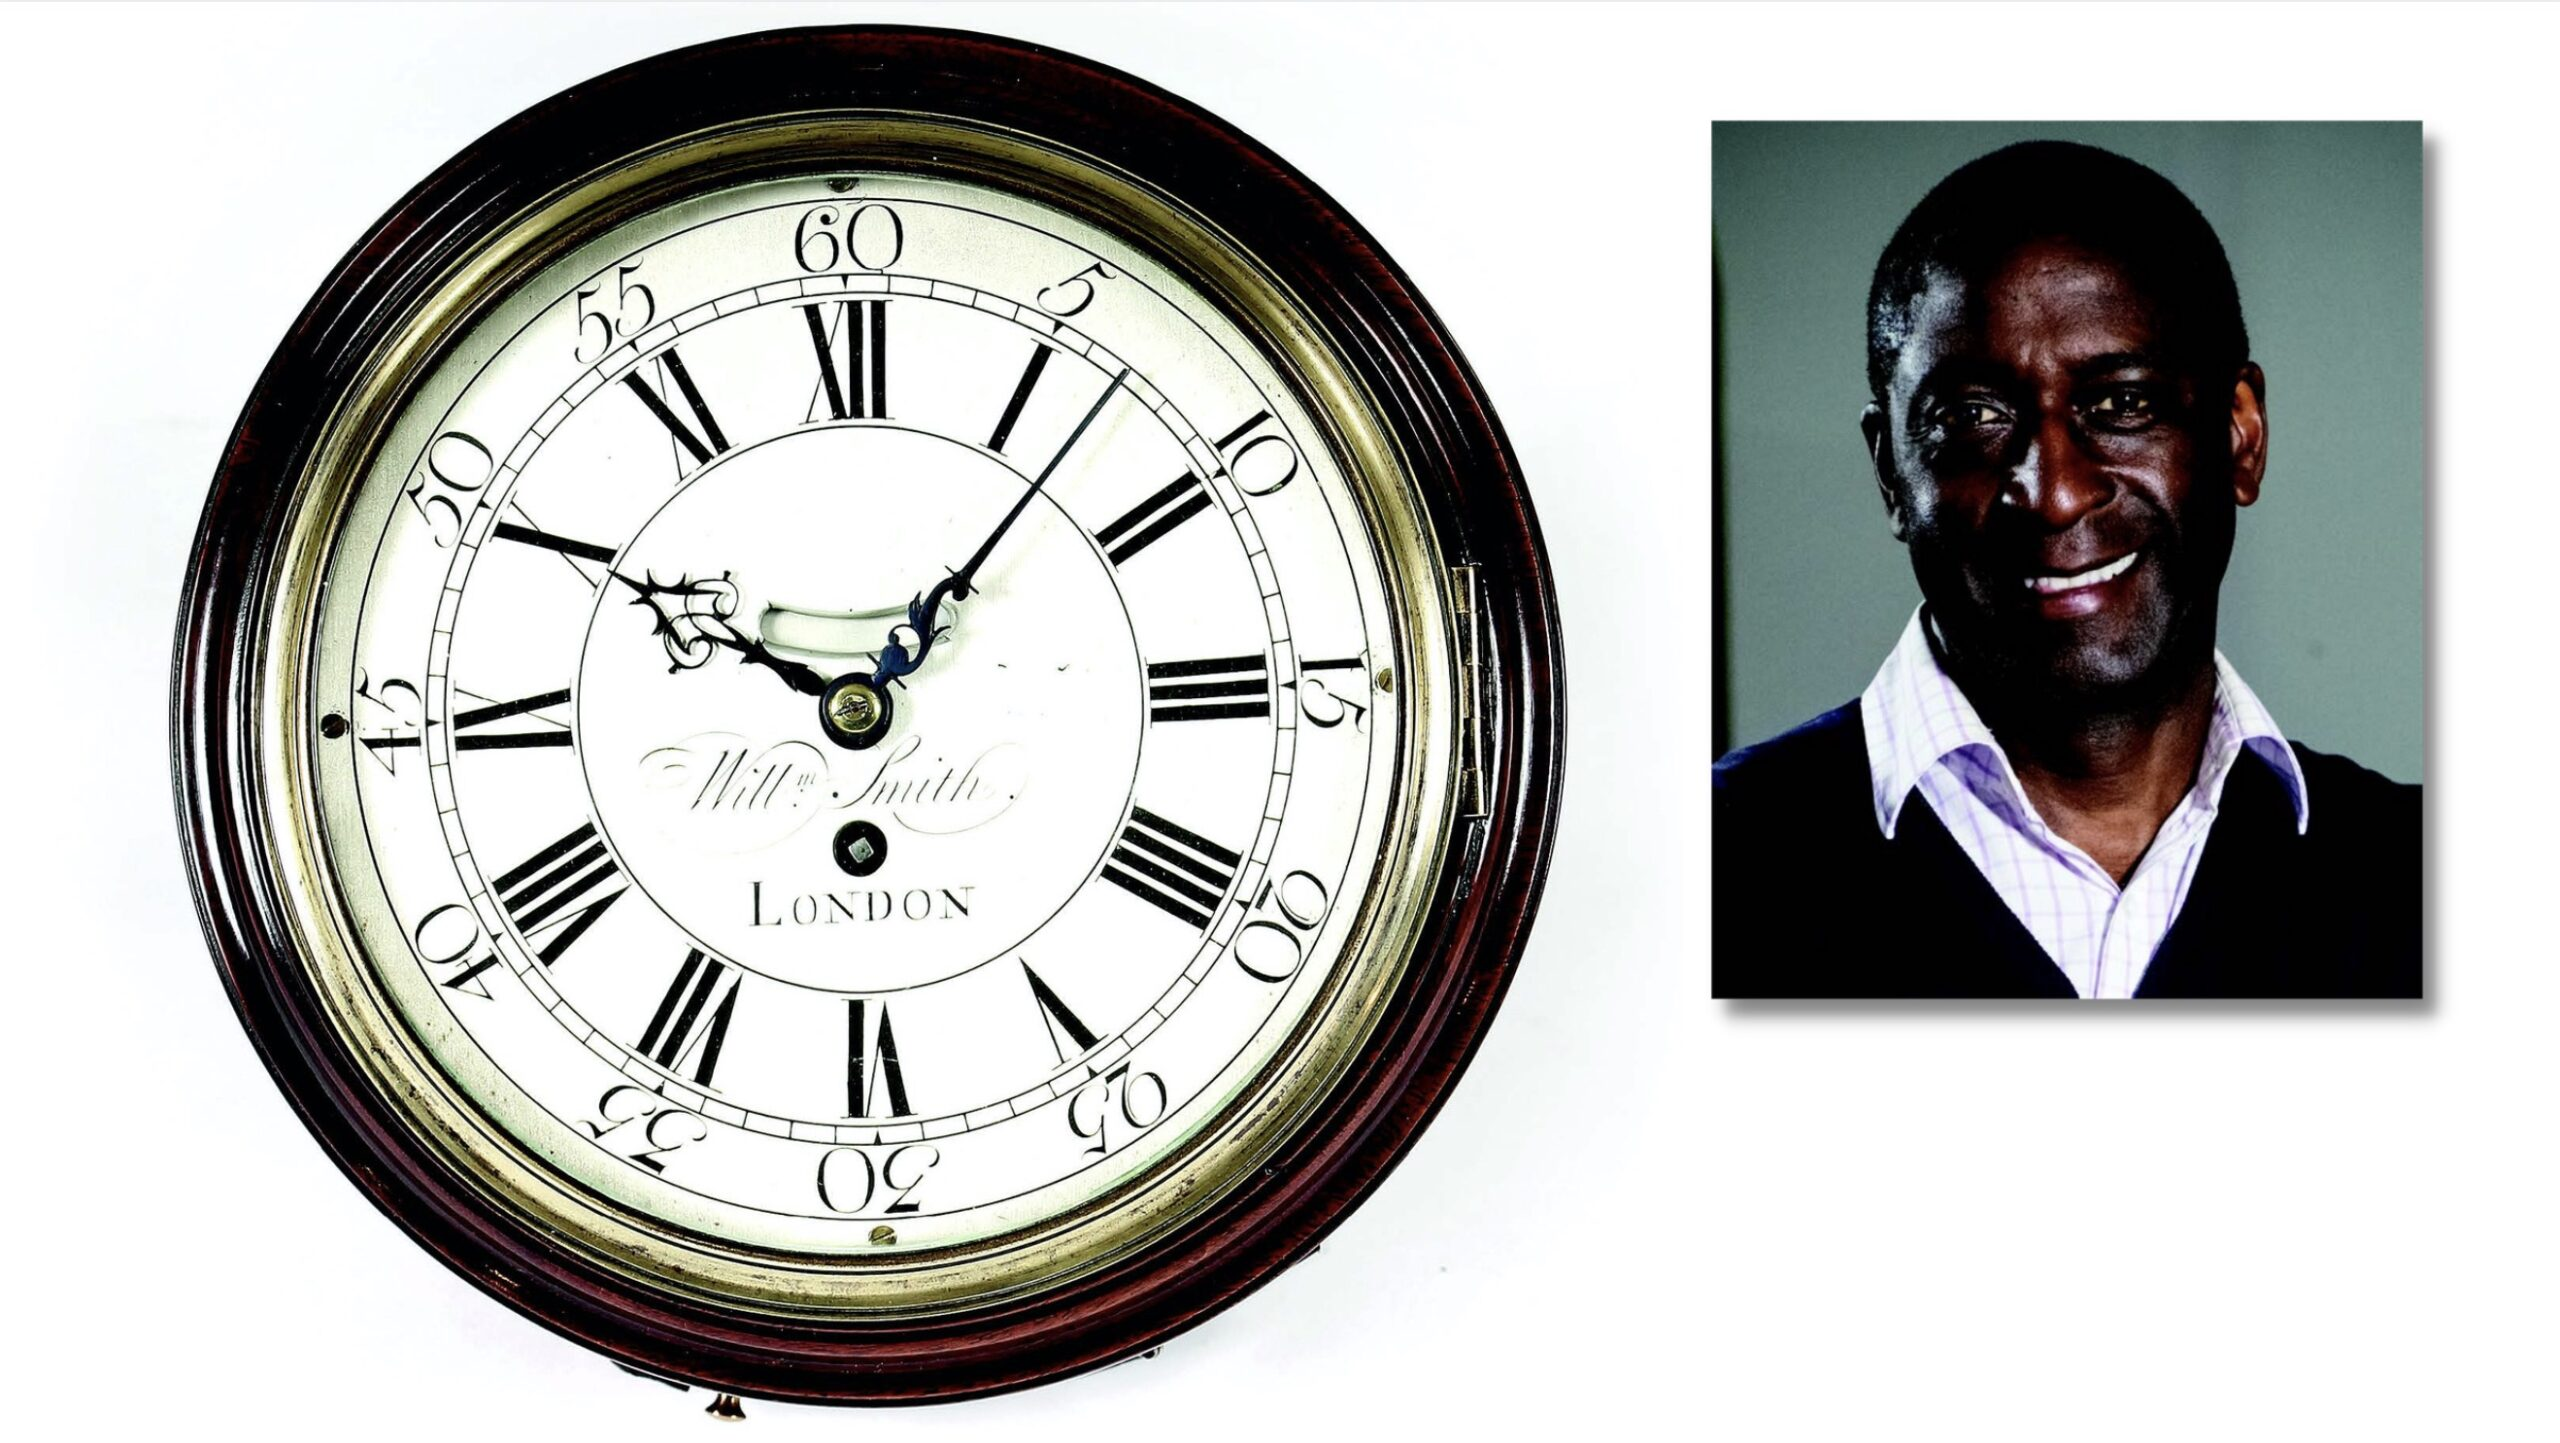 Lennox Cato and antique wall clock